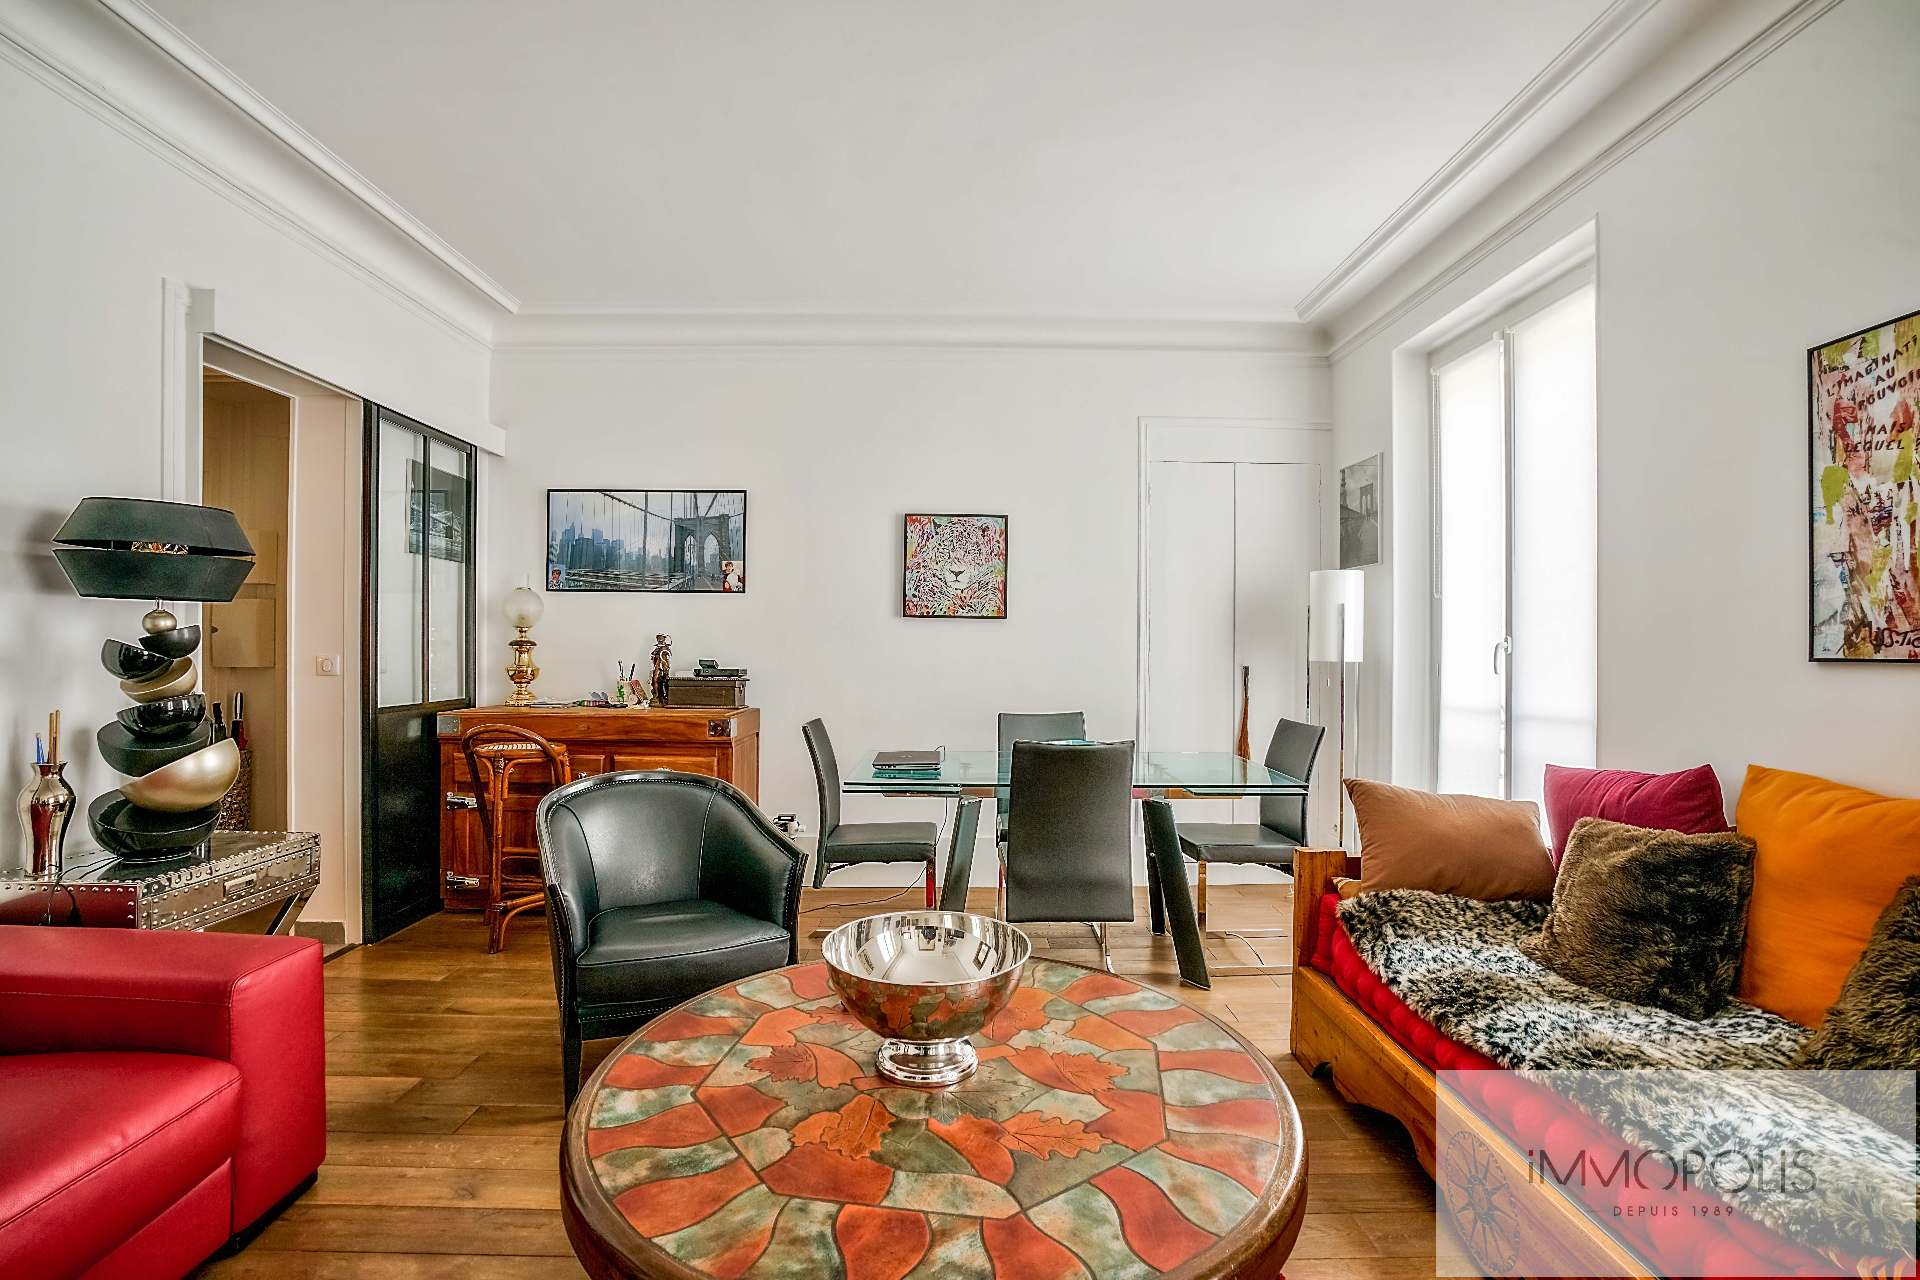 Abbesses, rue Constance: superb 3-room apartment (1 bedroom) on the 3rd floor with elevator: very nice amenities! 1